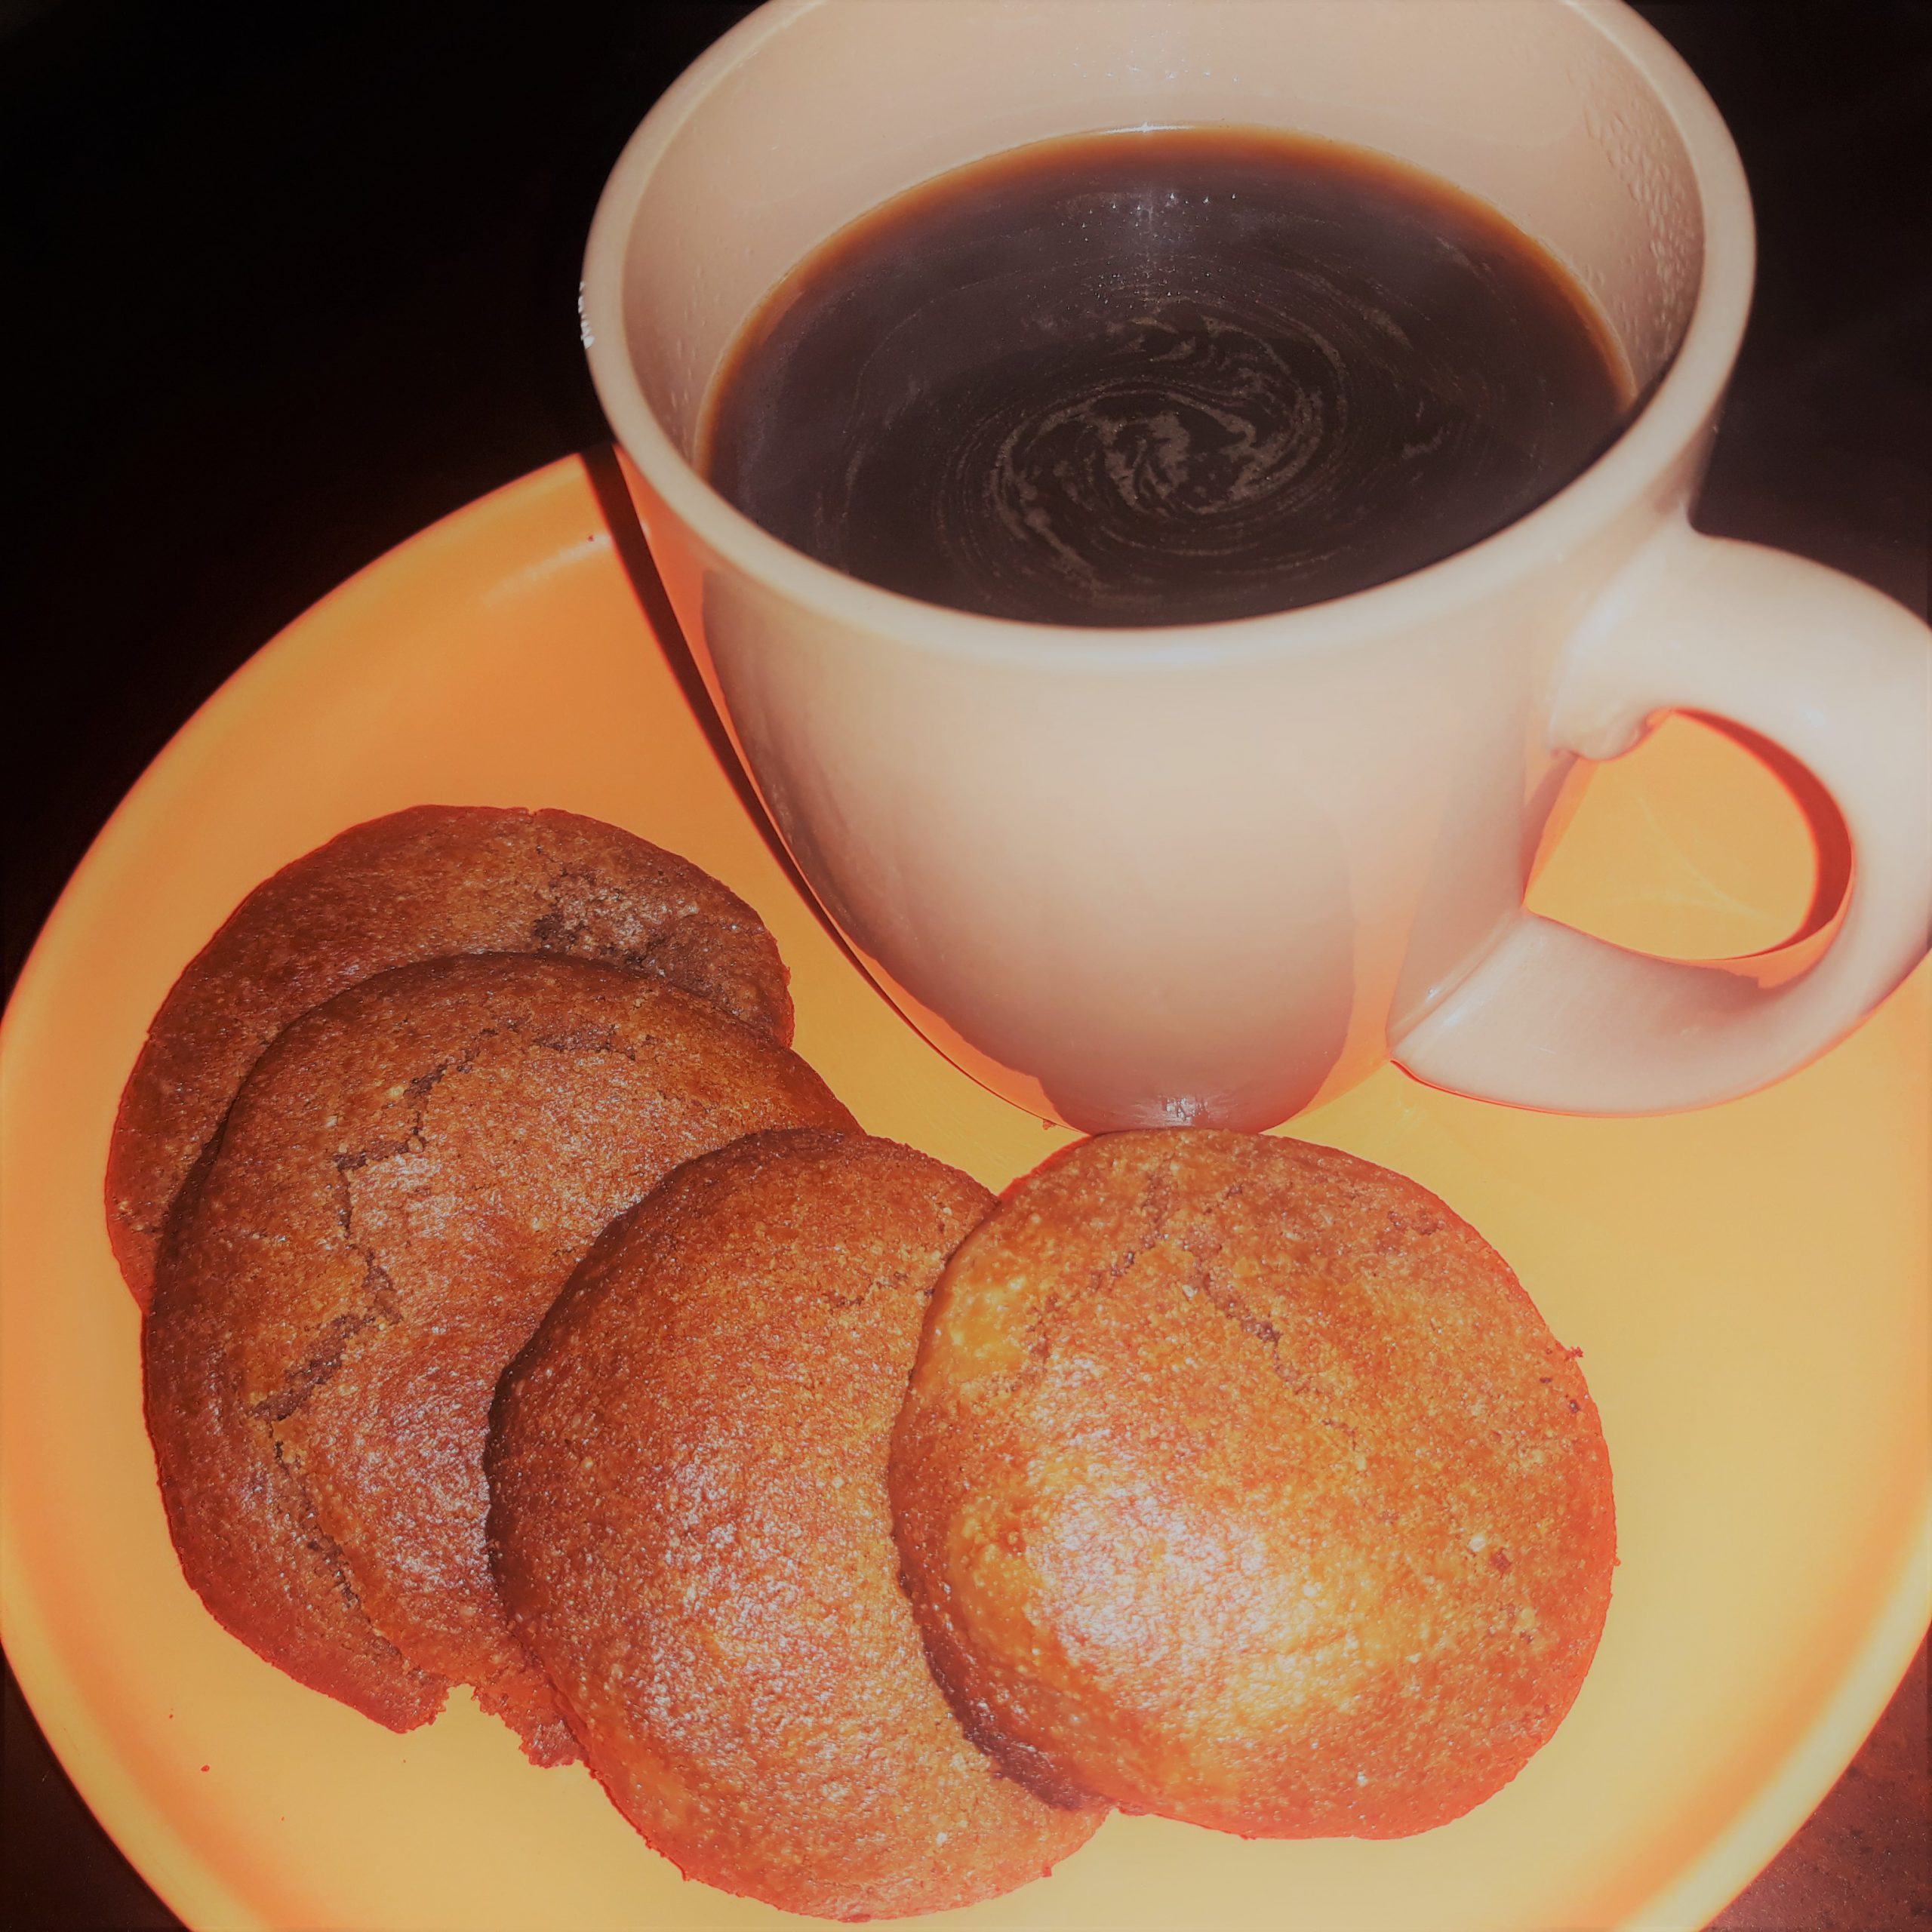 Four pieces of cookies on an orange plate with a brown cup of coffee on the side.